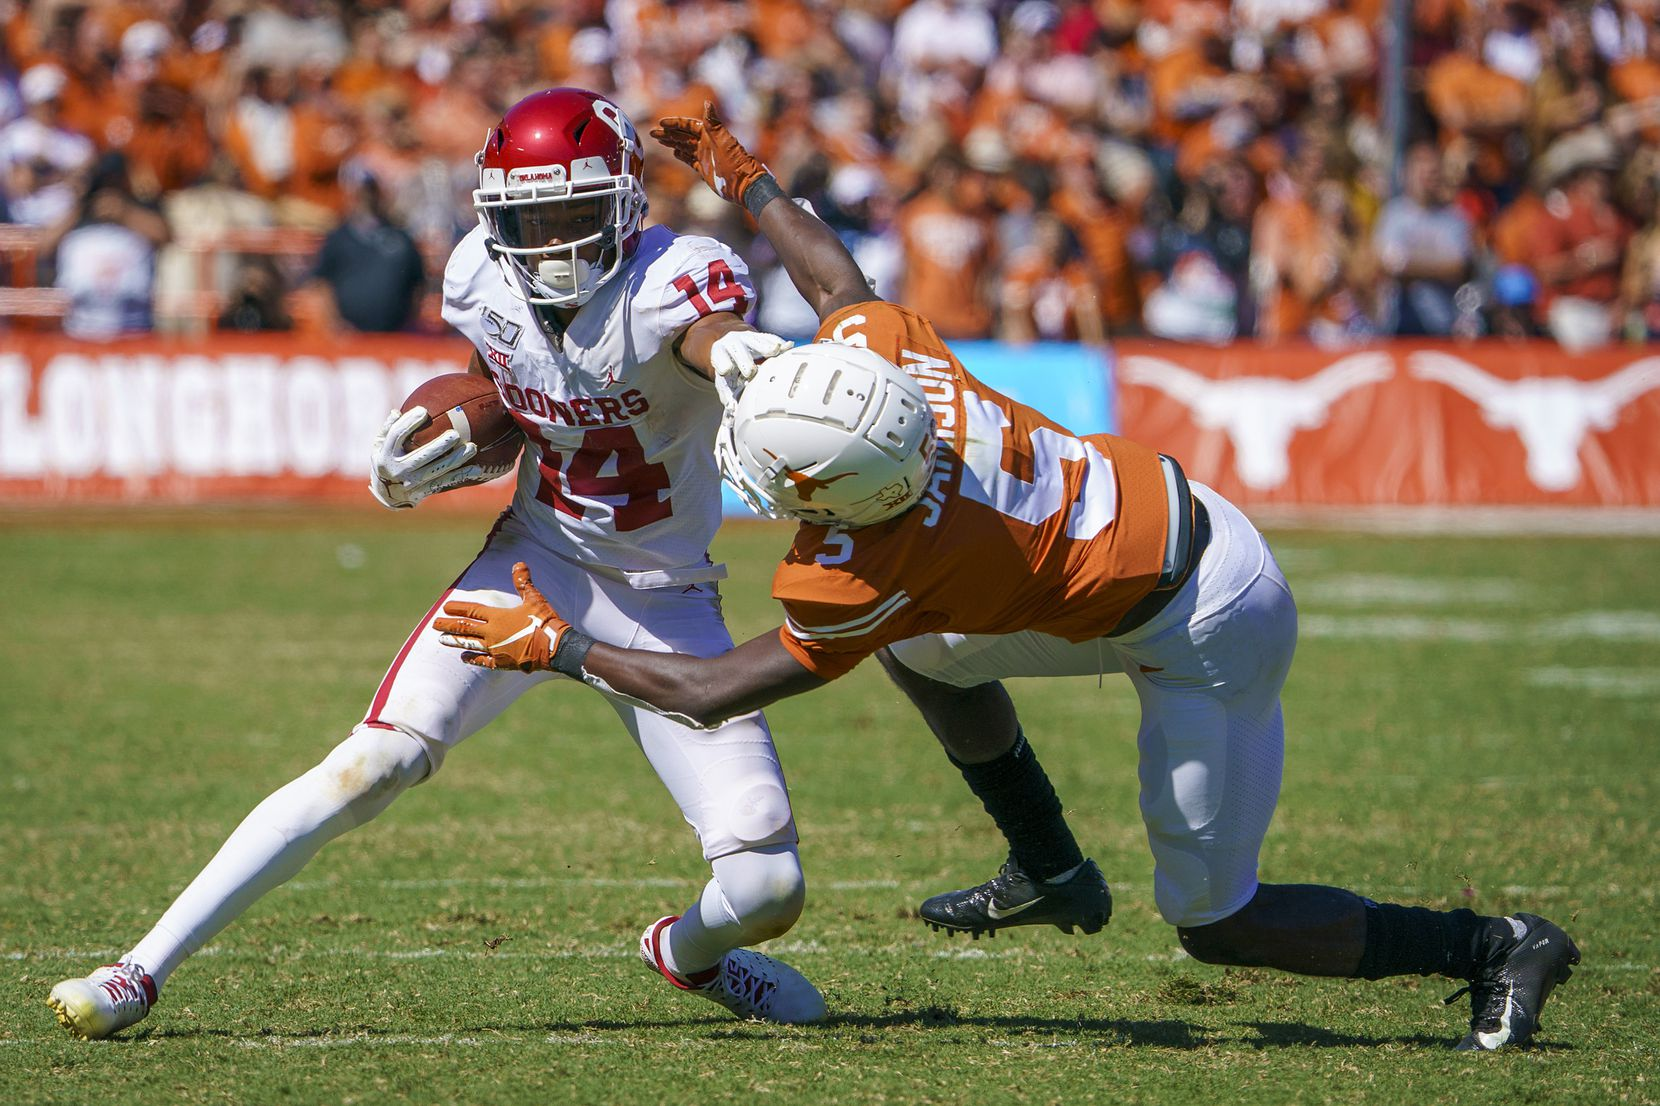 Oklahoma wide receiver Charleston Rambo (14) pushes off of Texas defensive back D'Shawn Jamison (5) during the second half of an NCAA football game at the Cotton Bowl on Saturday, Oct. 12, 2019, in Dallas.